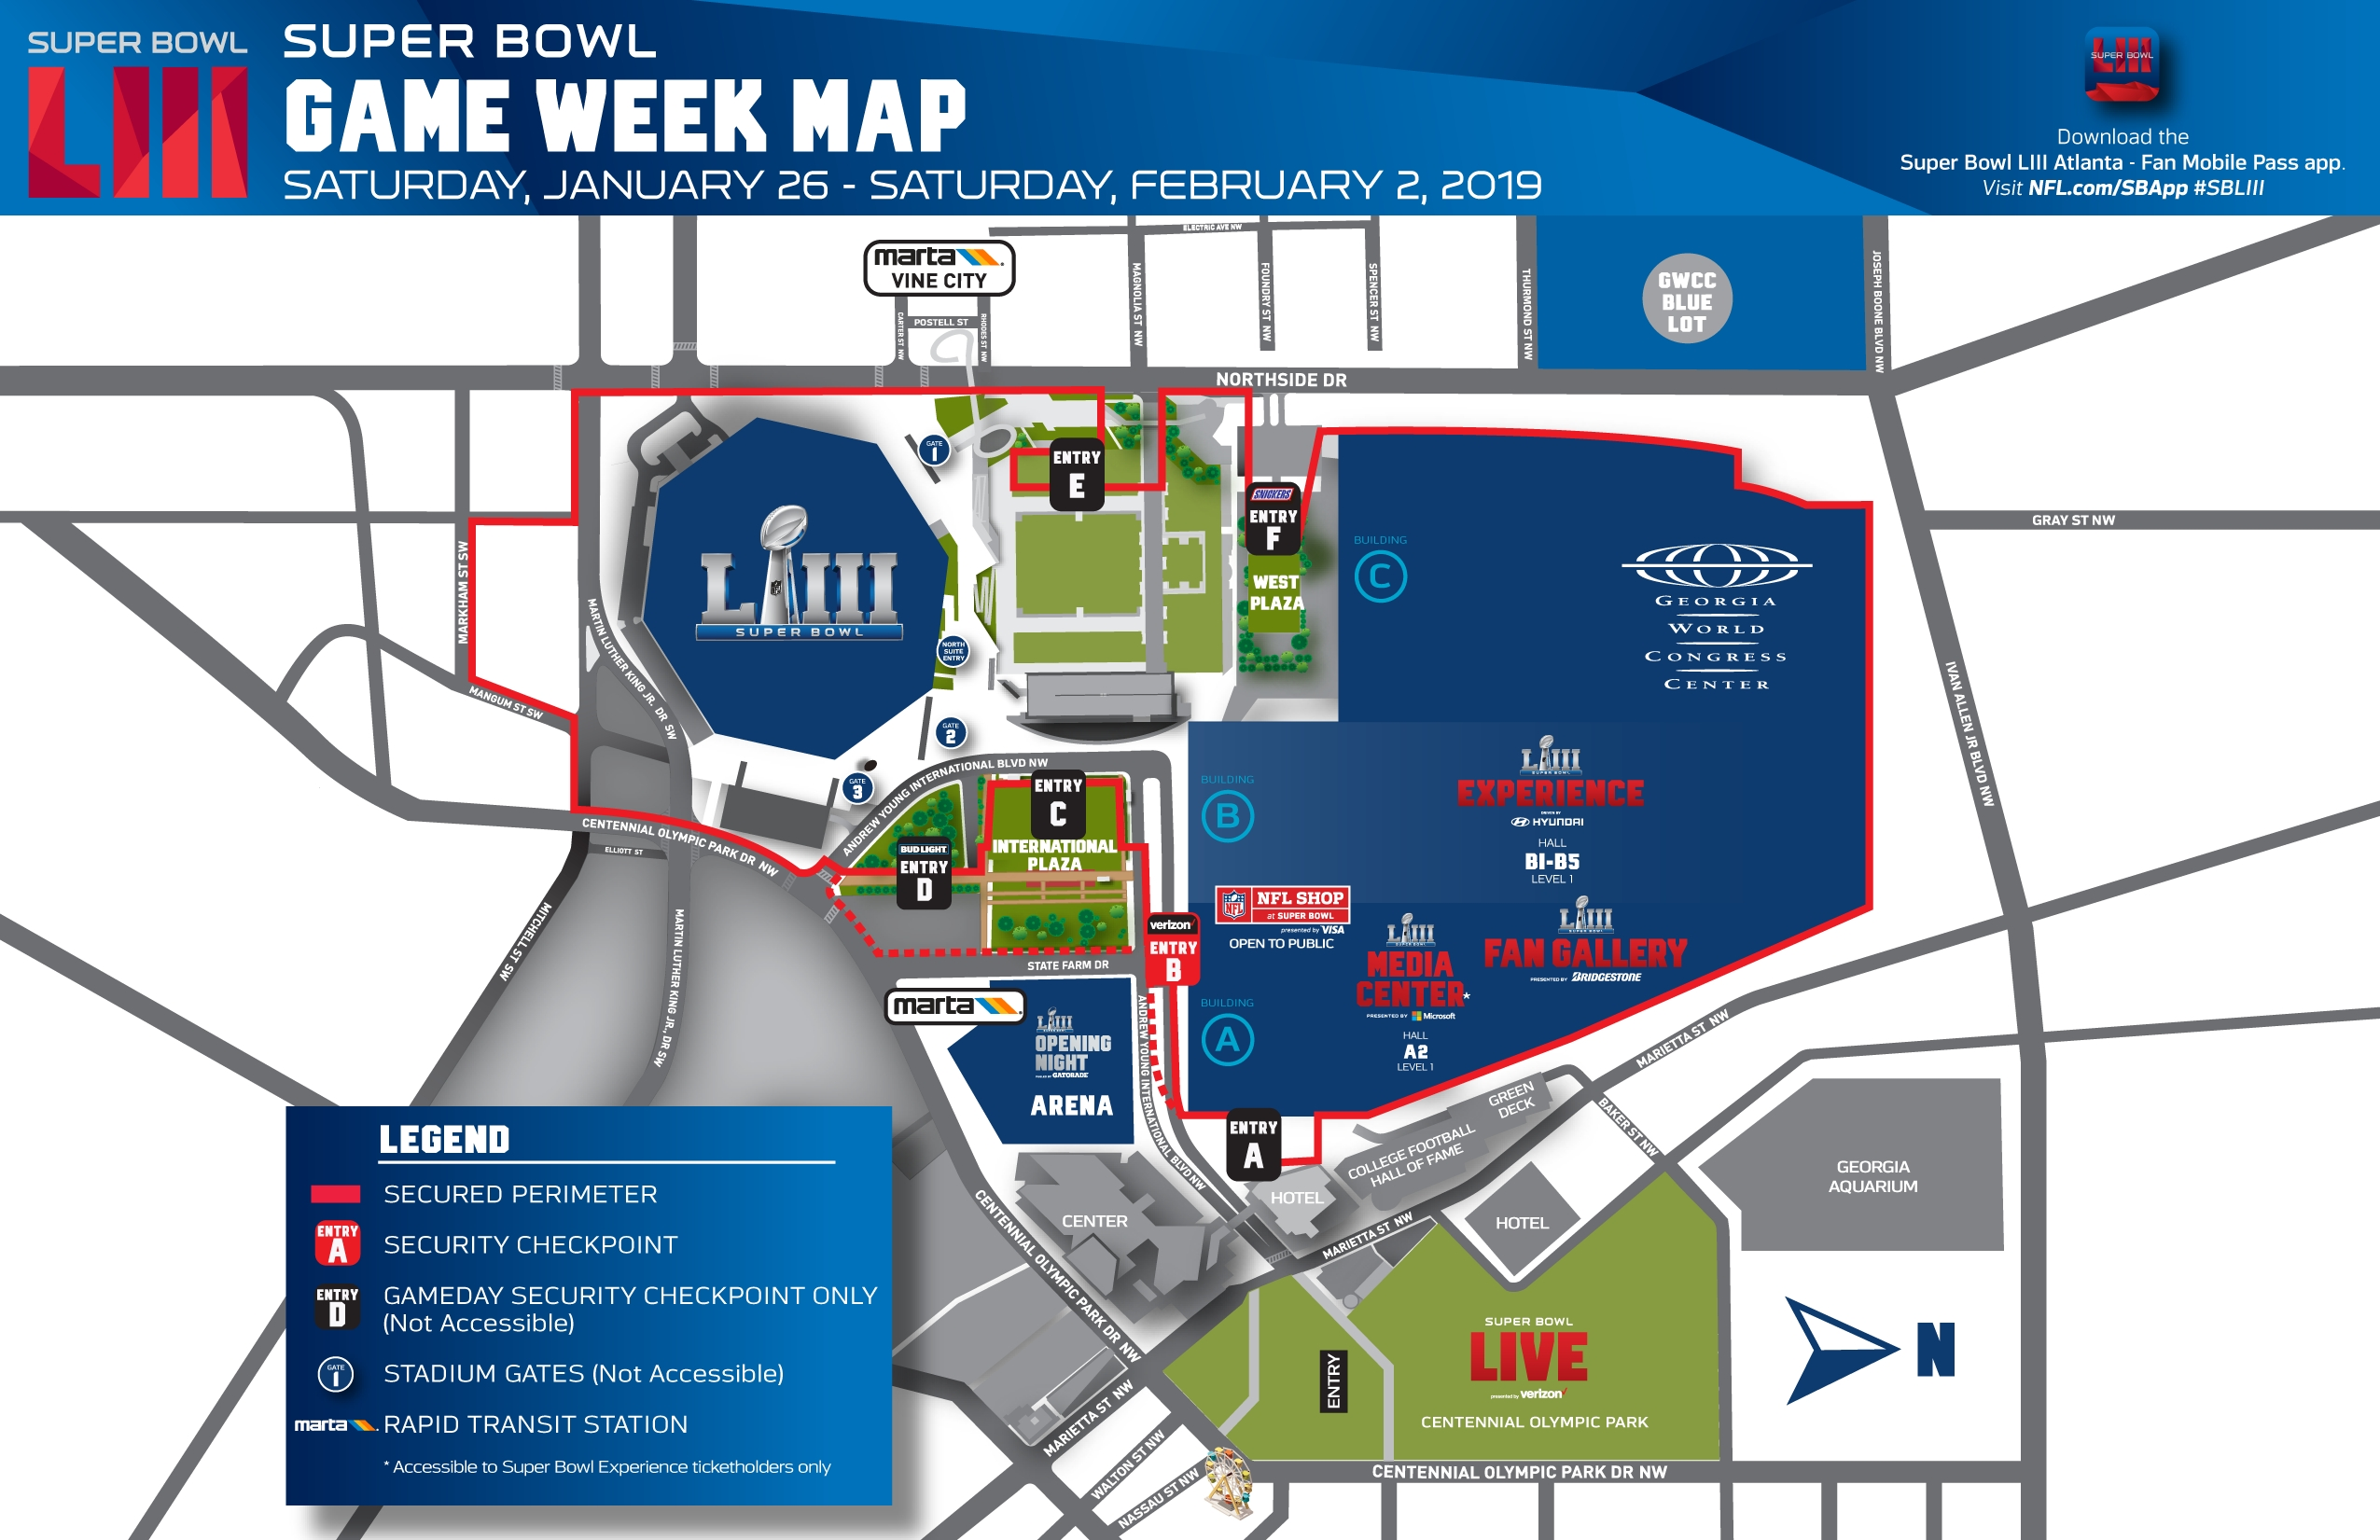 Super Bowl Experience | Nfl | Nfl intended for Super Bowl Fan Map